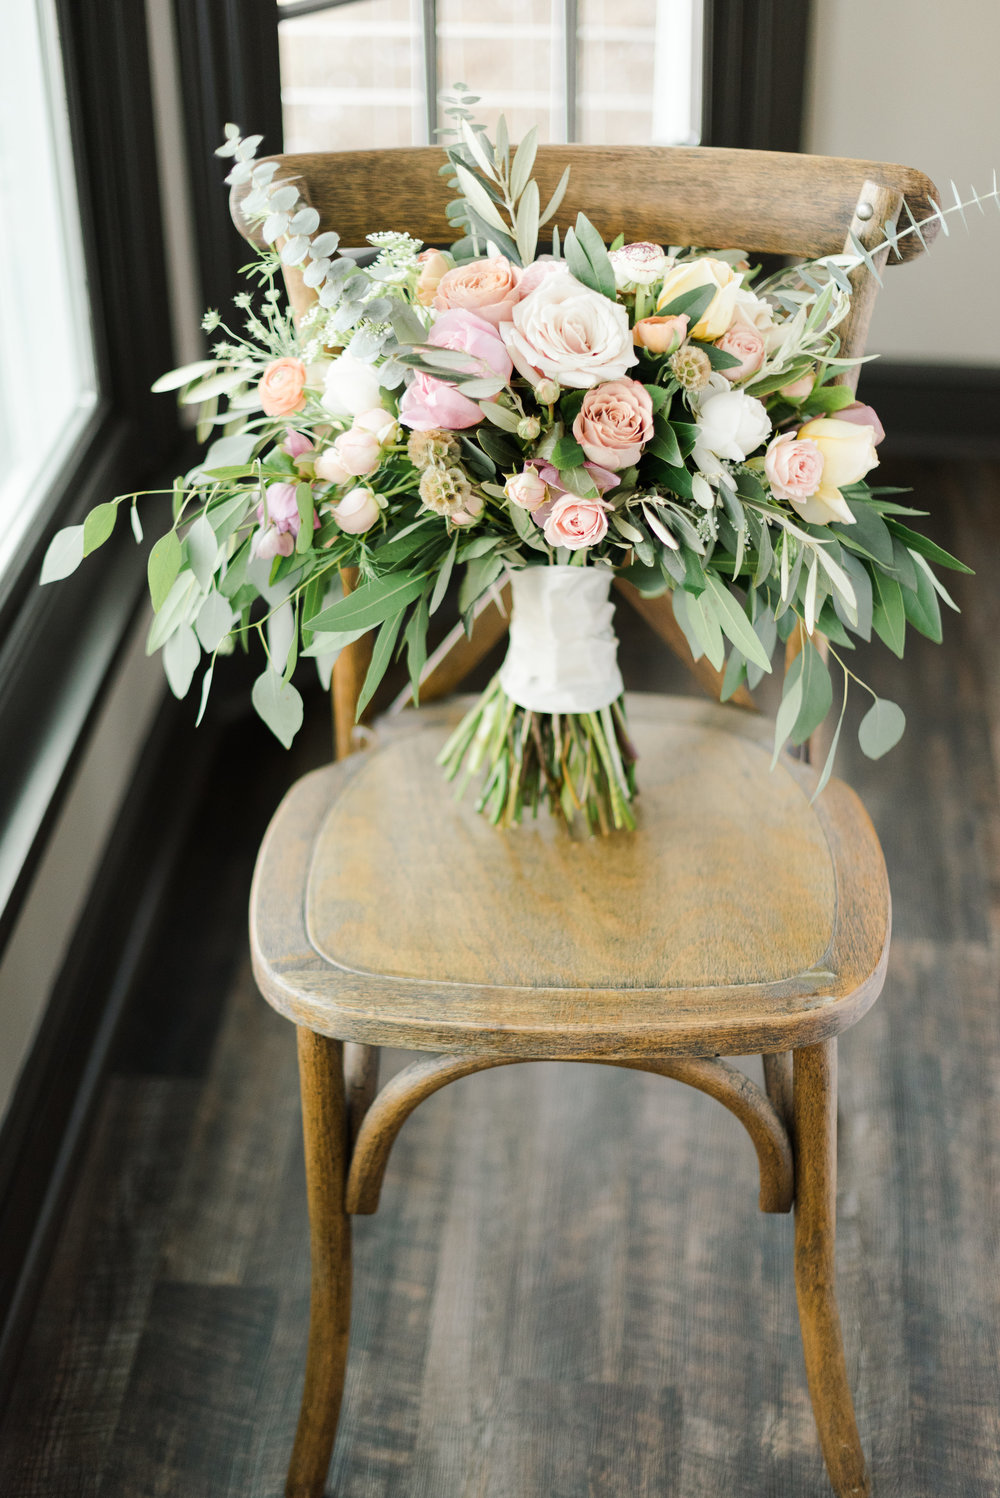 Romantic Wedding Design Inspired by the Senses - Styling by Event Prep and Photographed by Amanda Collins